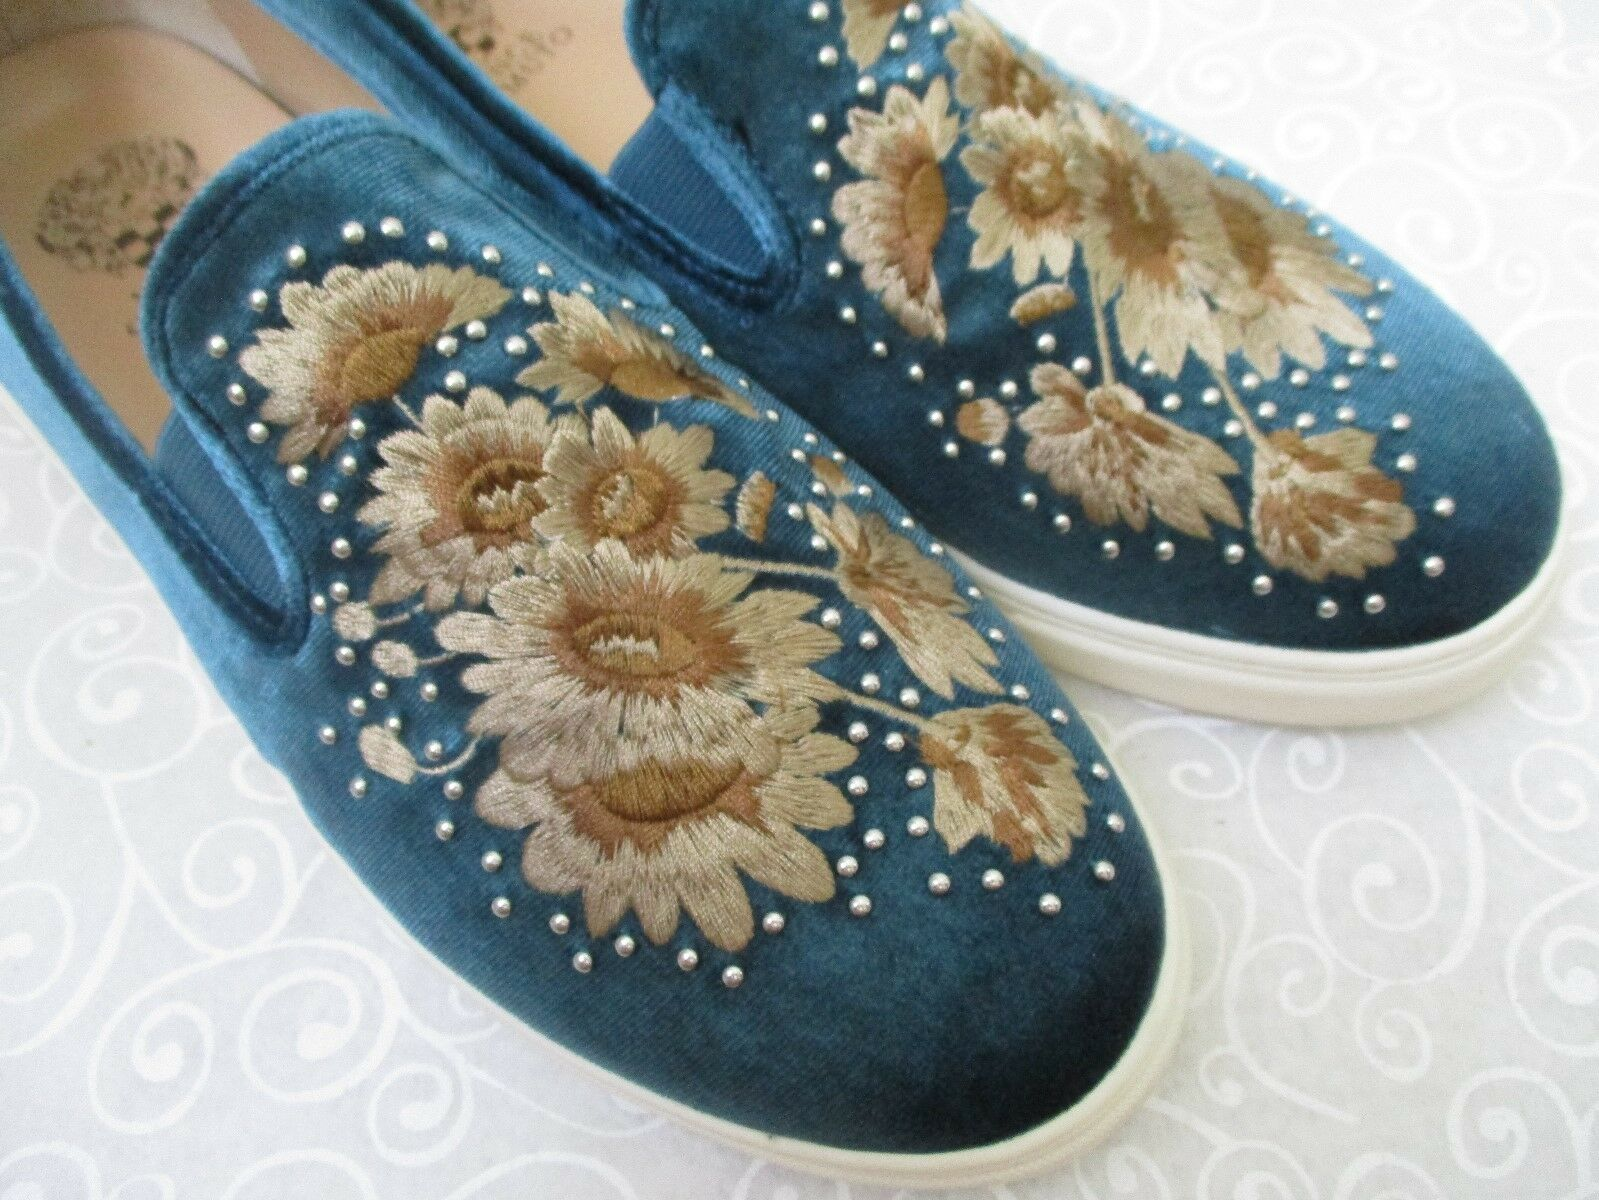 VINCE CAMUTO BRANDIA PEACOCK EMBROIDERED EMBROIDERED EMBROIDERED VELVET SNEAKERS SIZE 11M - NEW a4e18a